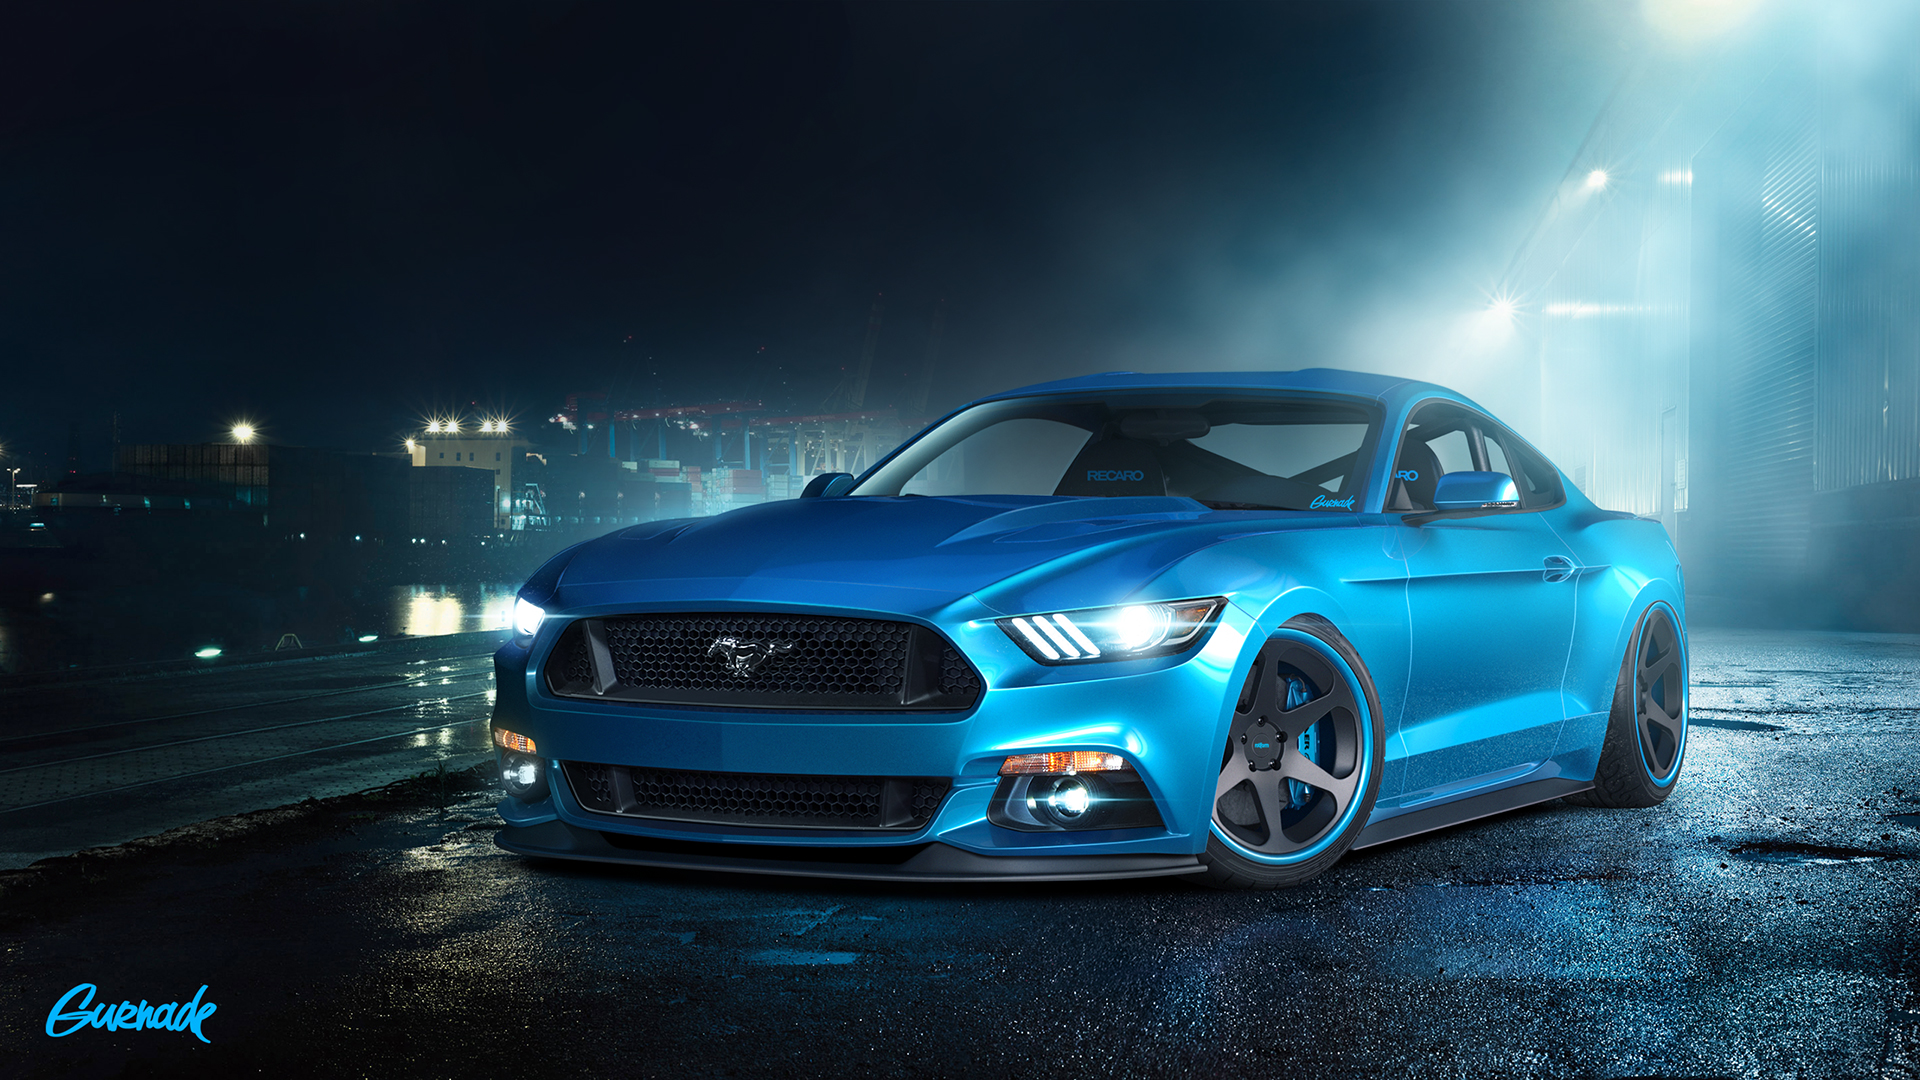 2015 ford mustang gt wallpaper hd car wallpapers - Mustang 2014 Black Wallpaper